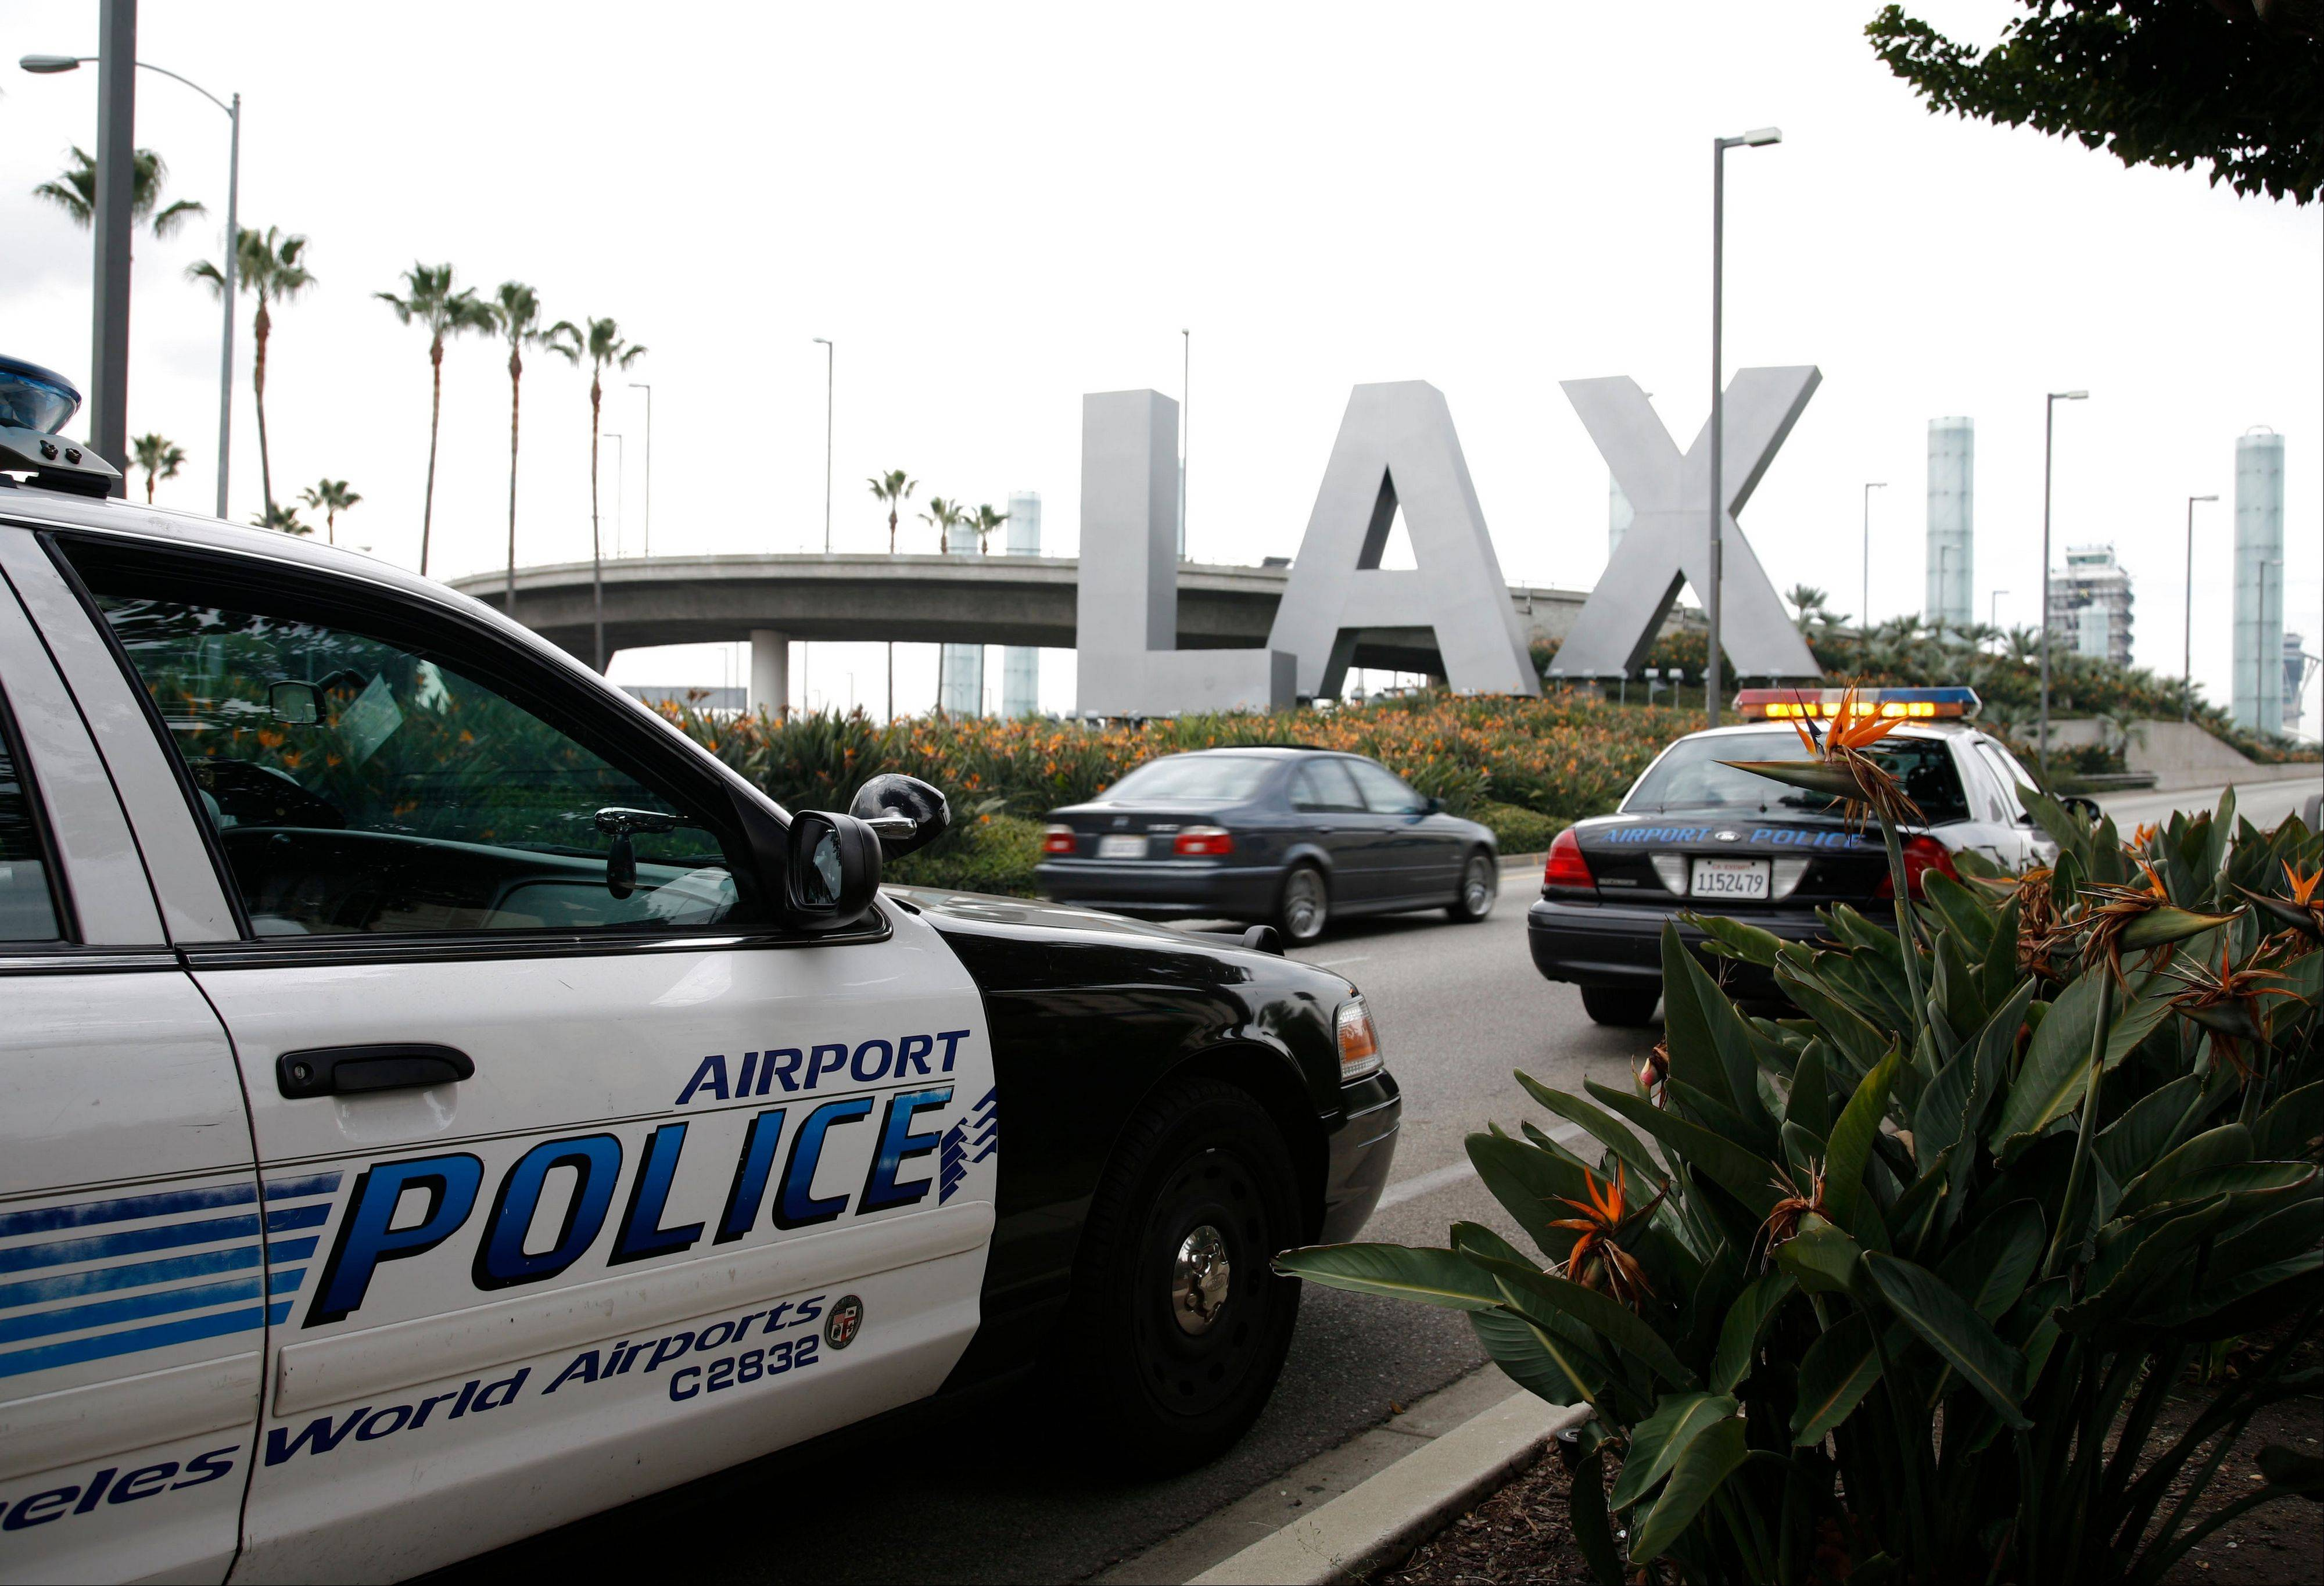 Airport police monitor the entrance of Los Angeles International Airport in Los Angeles. Yongda Huang Harris, 28, flying from Japan to Boston, was arrested Friday, Oct. 5, 2012, during a stopover at Los Angeles International Airport, wearing a bulletproof vest and flame-resistant pants, and traveling with a suitcase full of weapons, leg irons, a smoke grenade, a gas mask and a biohazard suitd, U.S. Immigration and Customs Enforcement officials said.